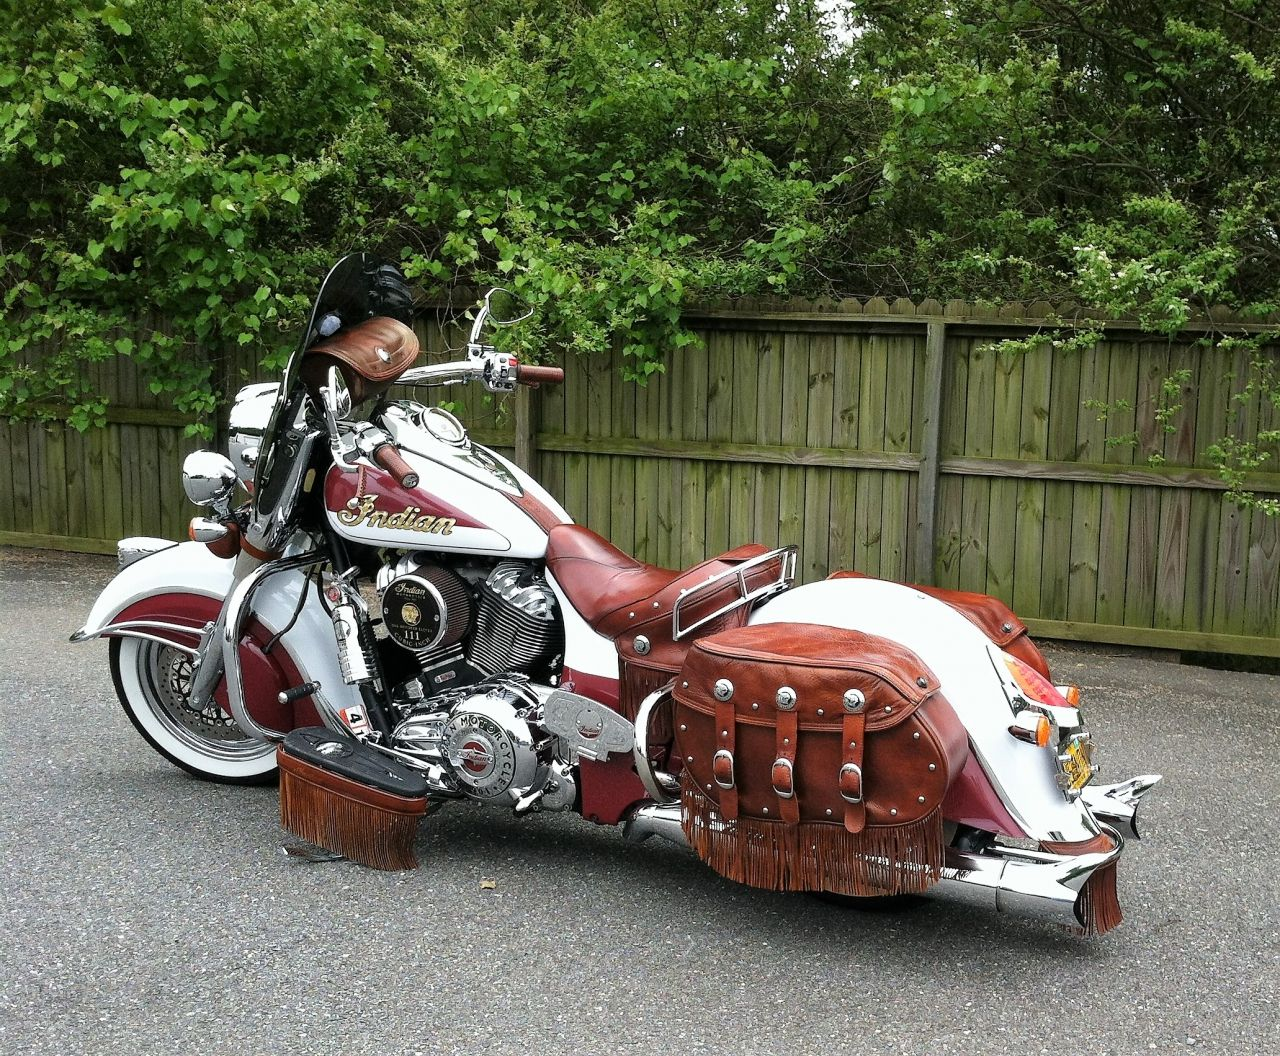 Photo 26265 In The Album 2014 Vintage By Flip Indian Motorcycle Forum Vintage Indian Motorcycles Indian Motorcycle Indian Motorbike [ 1056 x 1280 Pixel ]